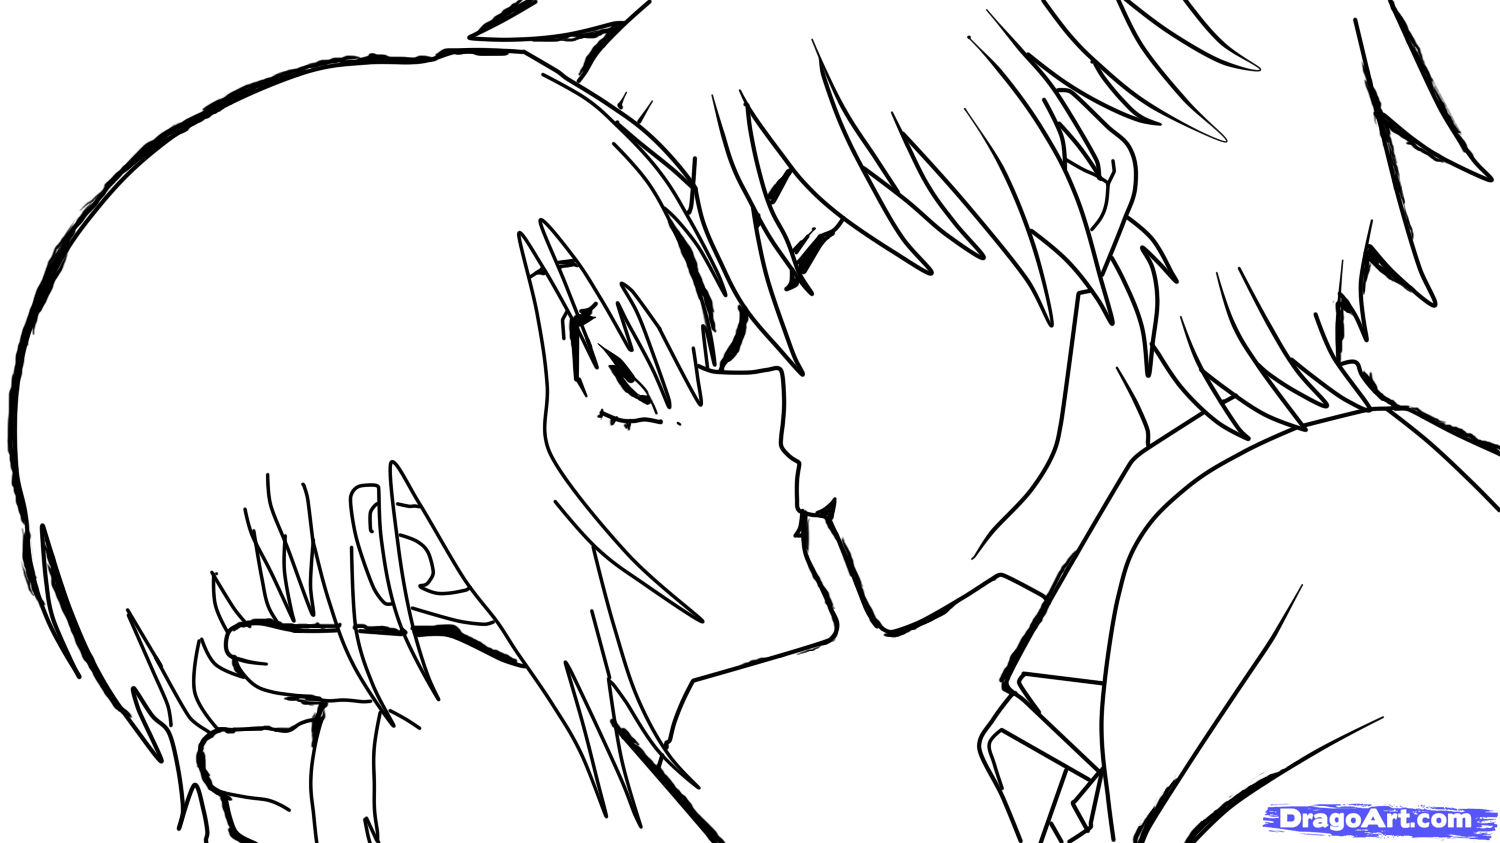 1500x843 Sketch Anime Boy And Girl Kissing Drawn Kisses Anime Kid